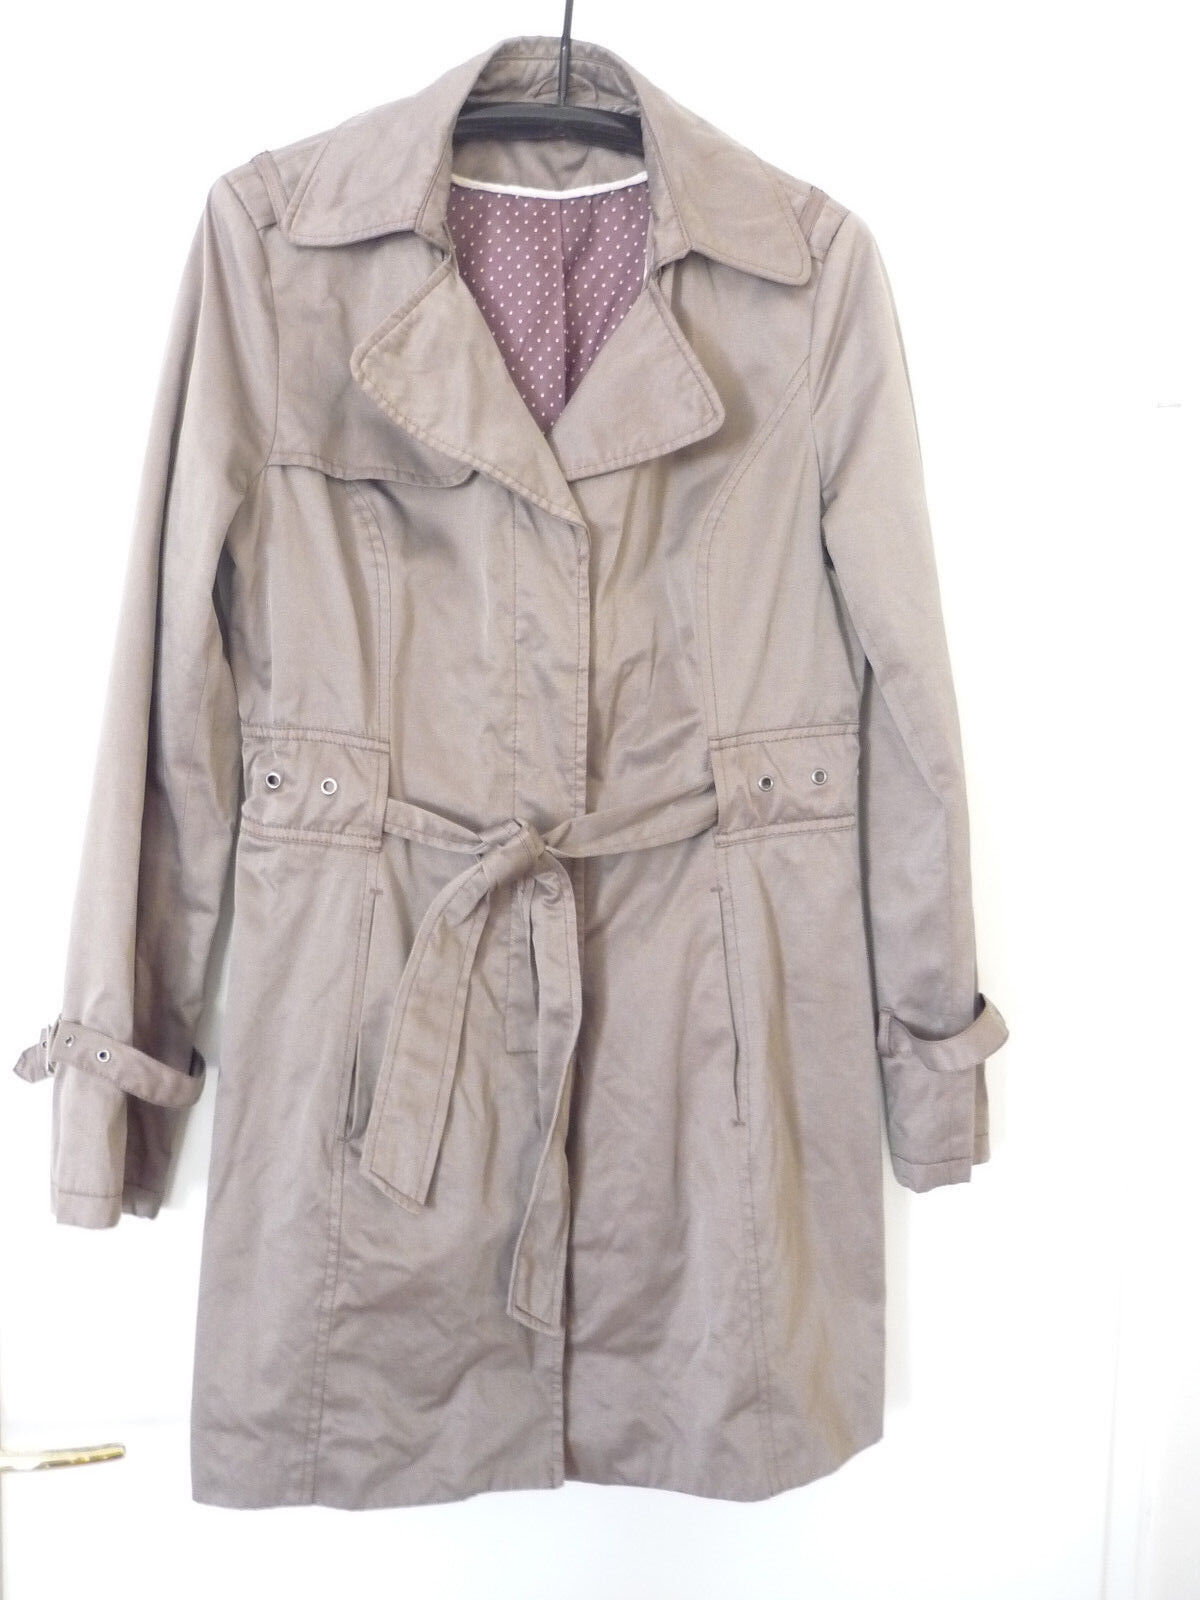 791a5a1ca748 ... ONLY Damen Mantel Jacke onlNEW WITHNESS TRENCHCOAT Kurzmantel Übergang  Sommer, orsay Damen Sommer Trenchcoat Mantel Kurzmantel taupe Gr. 38 40 -  TOP!